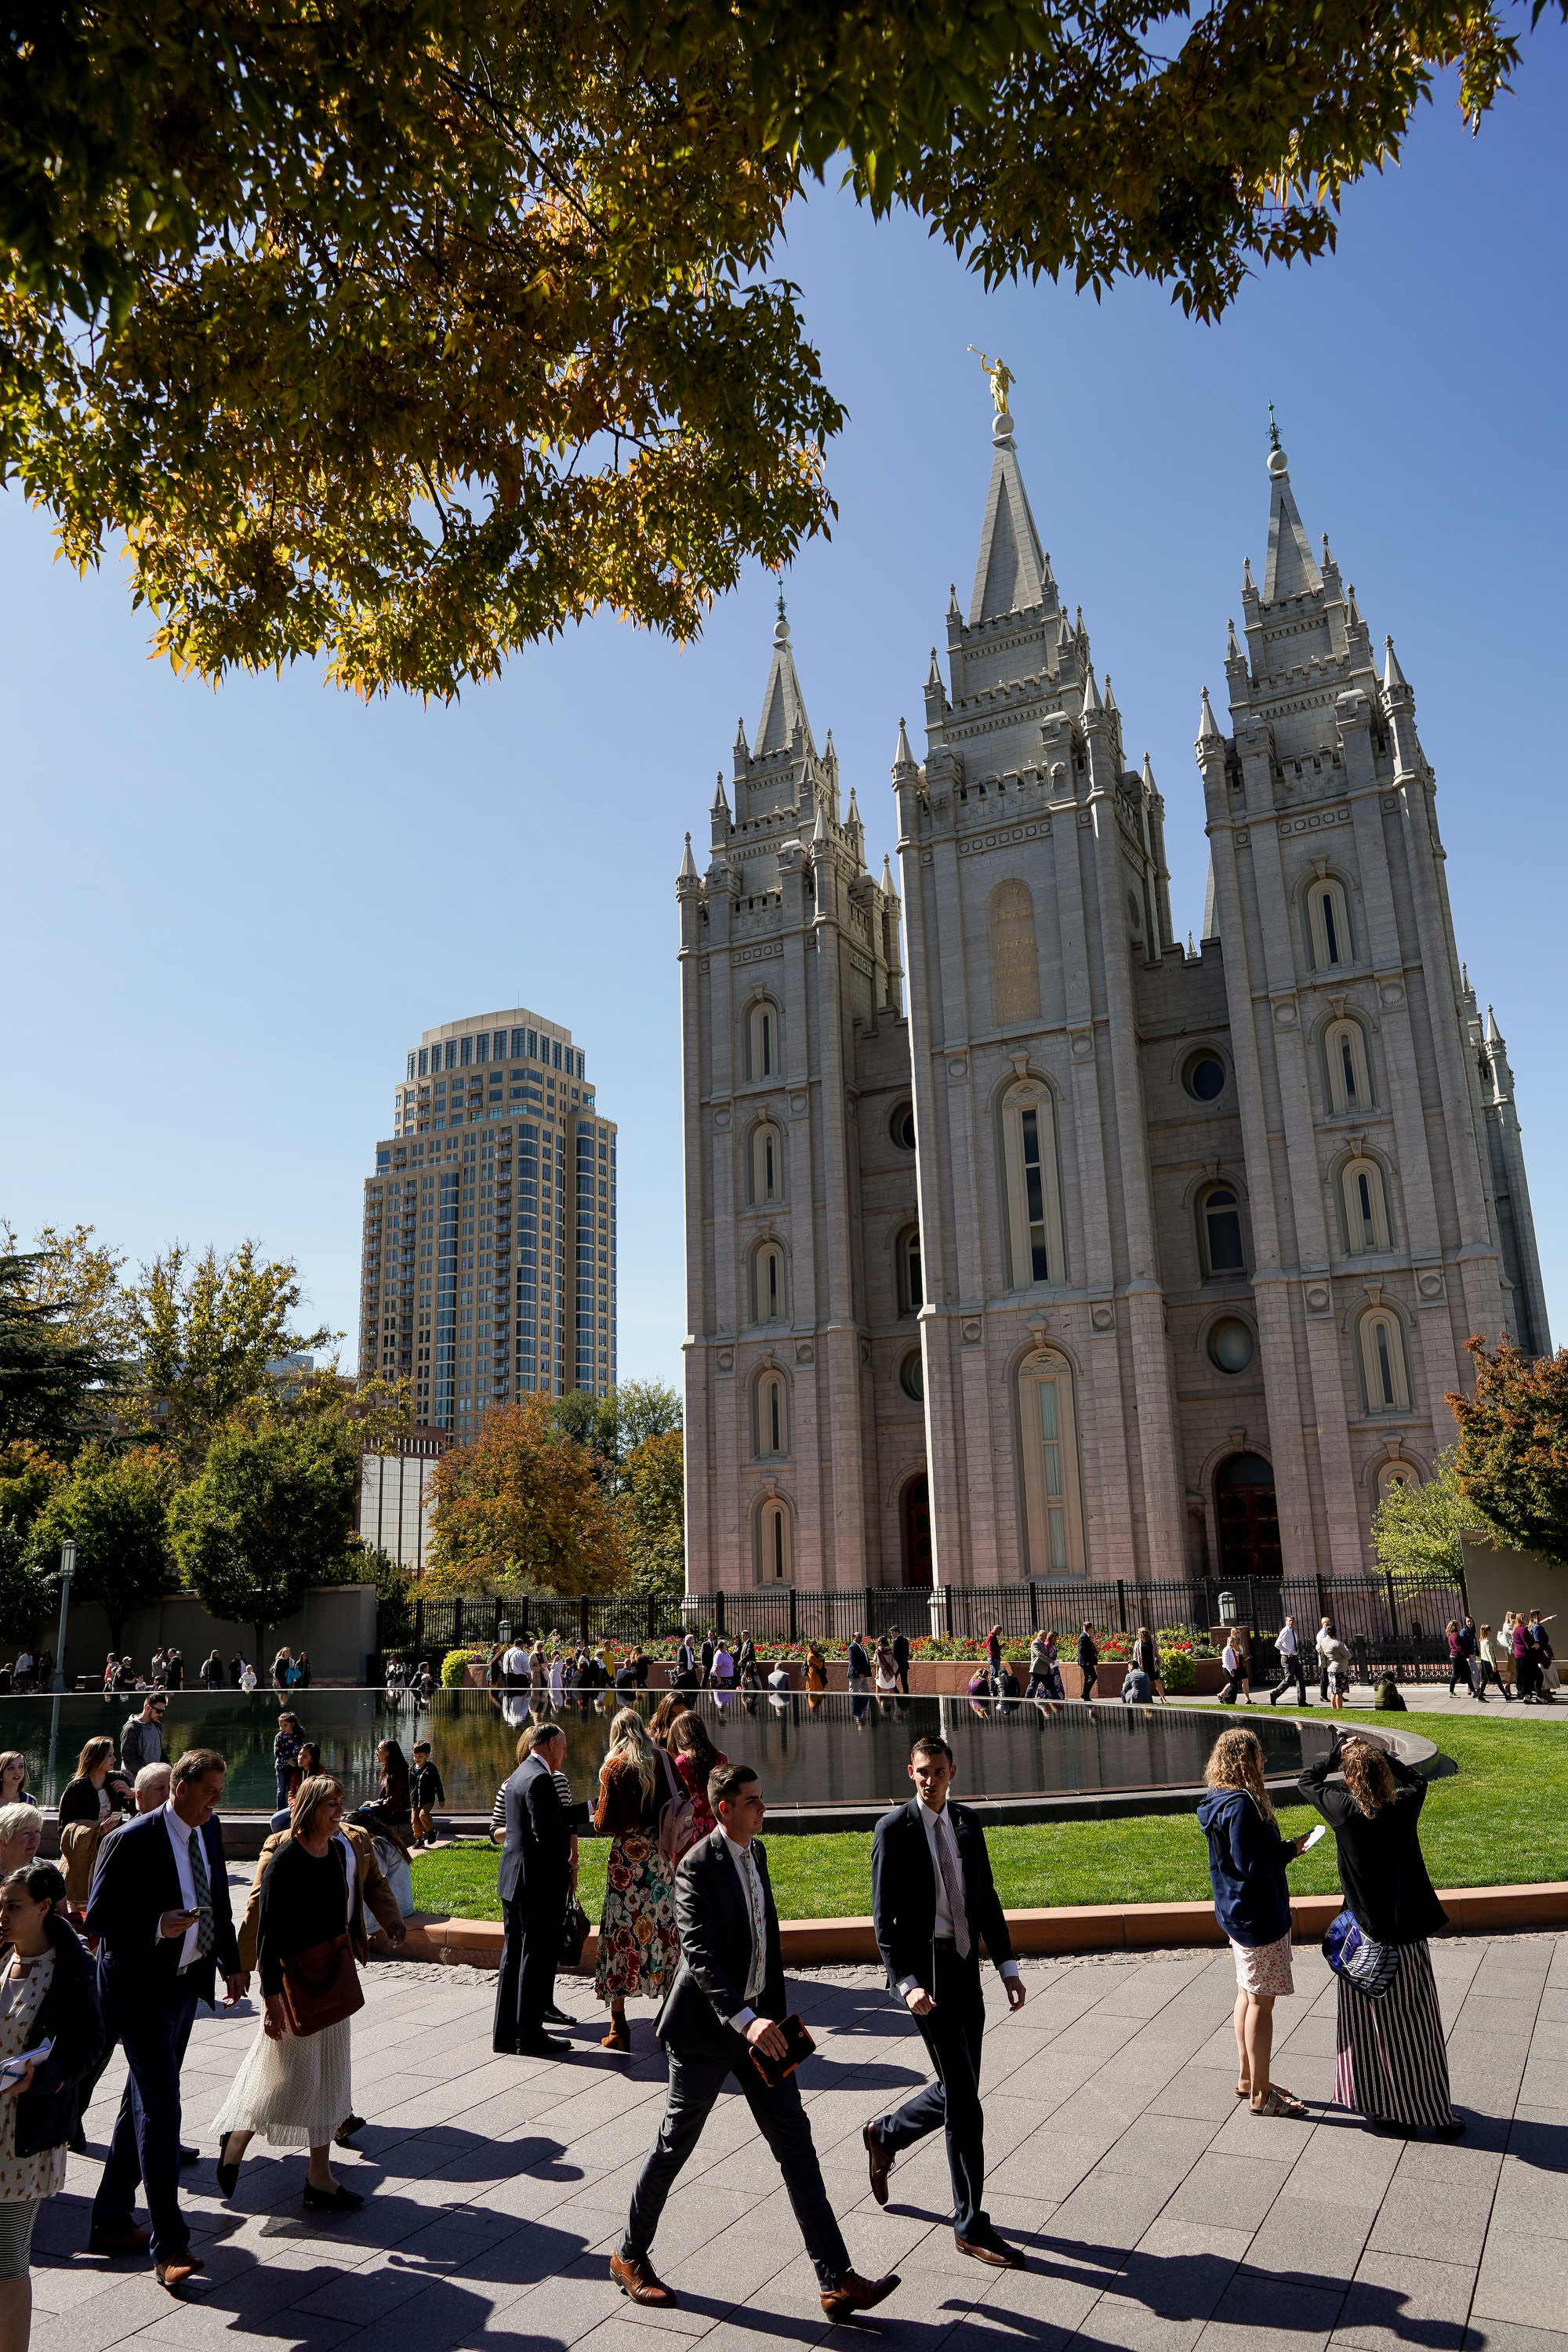 People walk outside Temple Square before the Saturday afternoon session of the 189th Semiannual General Conference of The Church of Jesus Christ of Latter-day Saints in Salt Lake City on Saturday, Oct. 5, 2019.